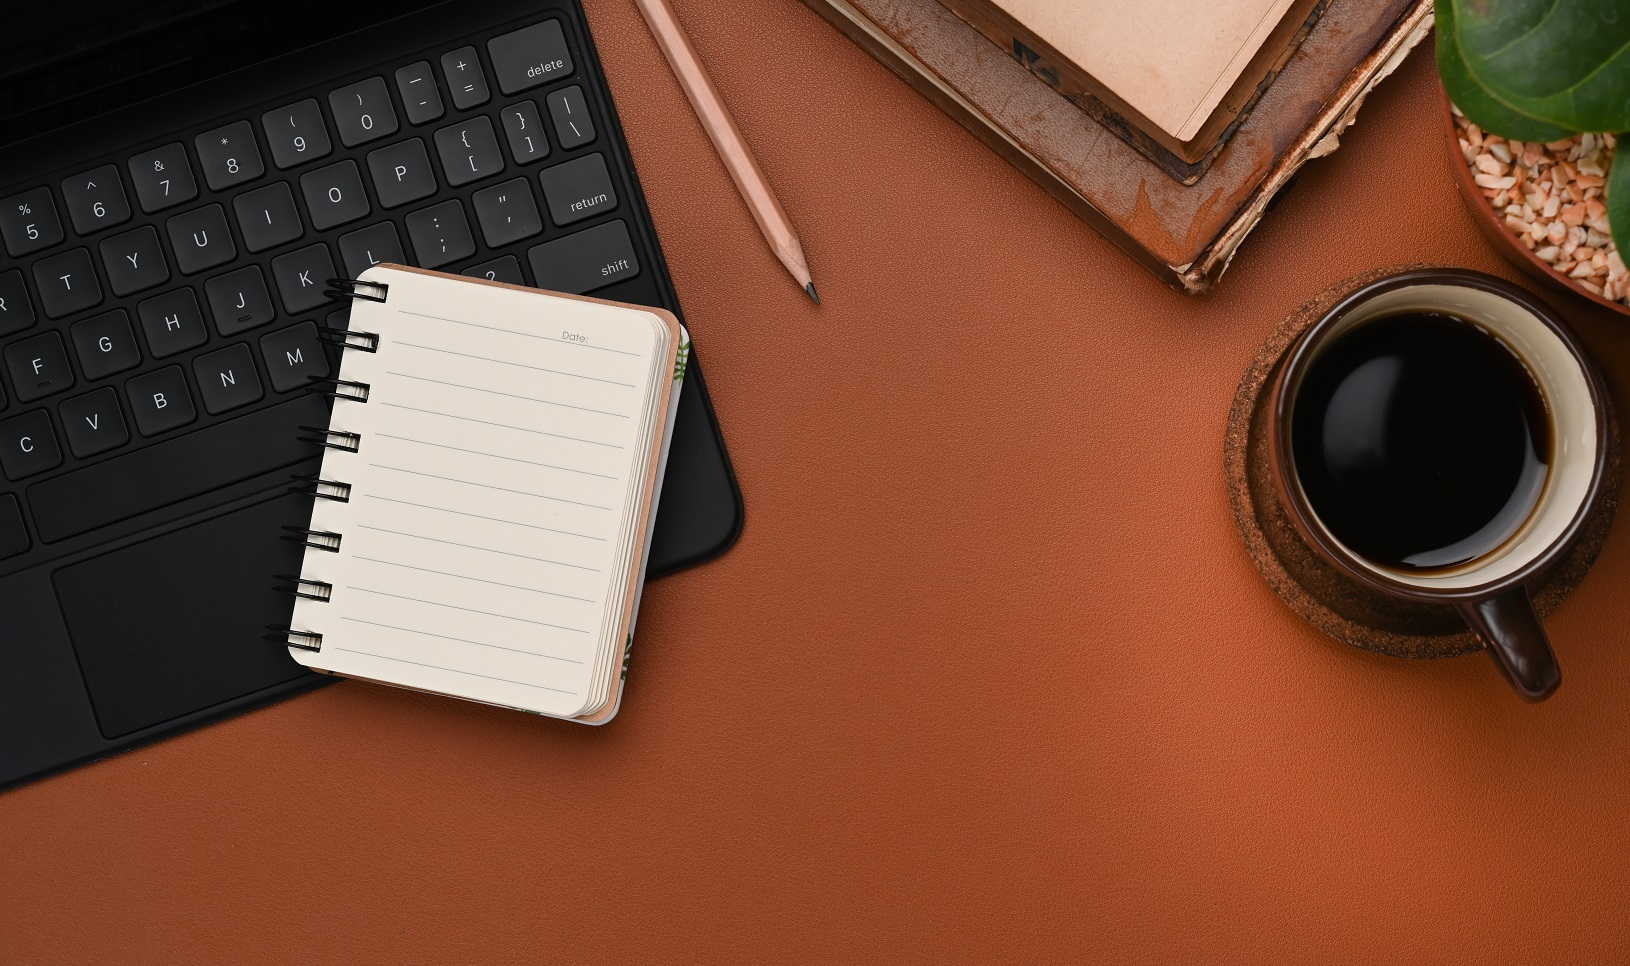 Overhead shot of contemporary workplace with coffee cup, notebook, keyboard and copy space brown leather.